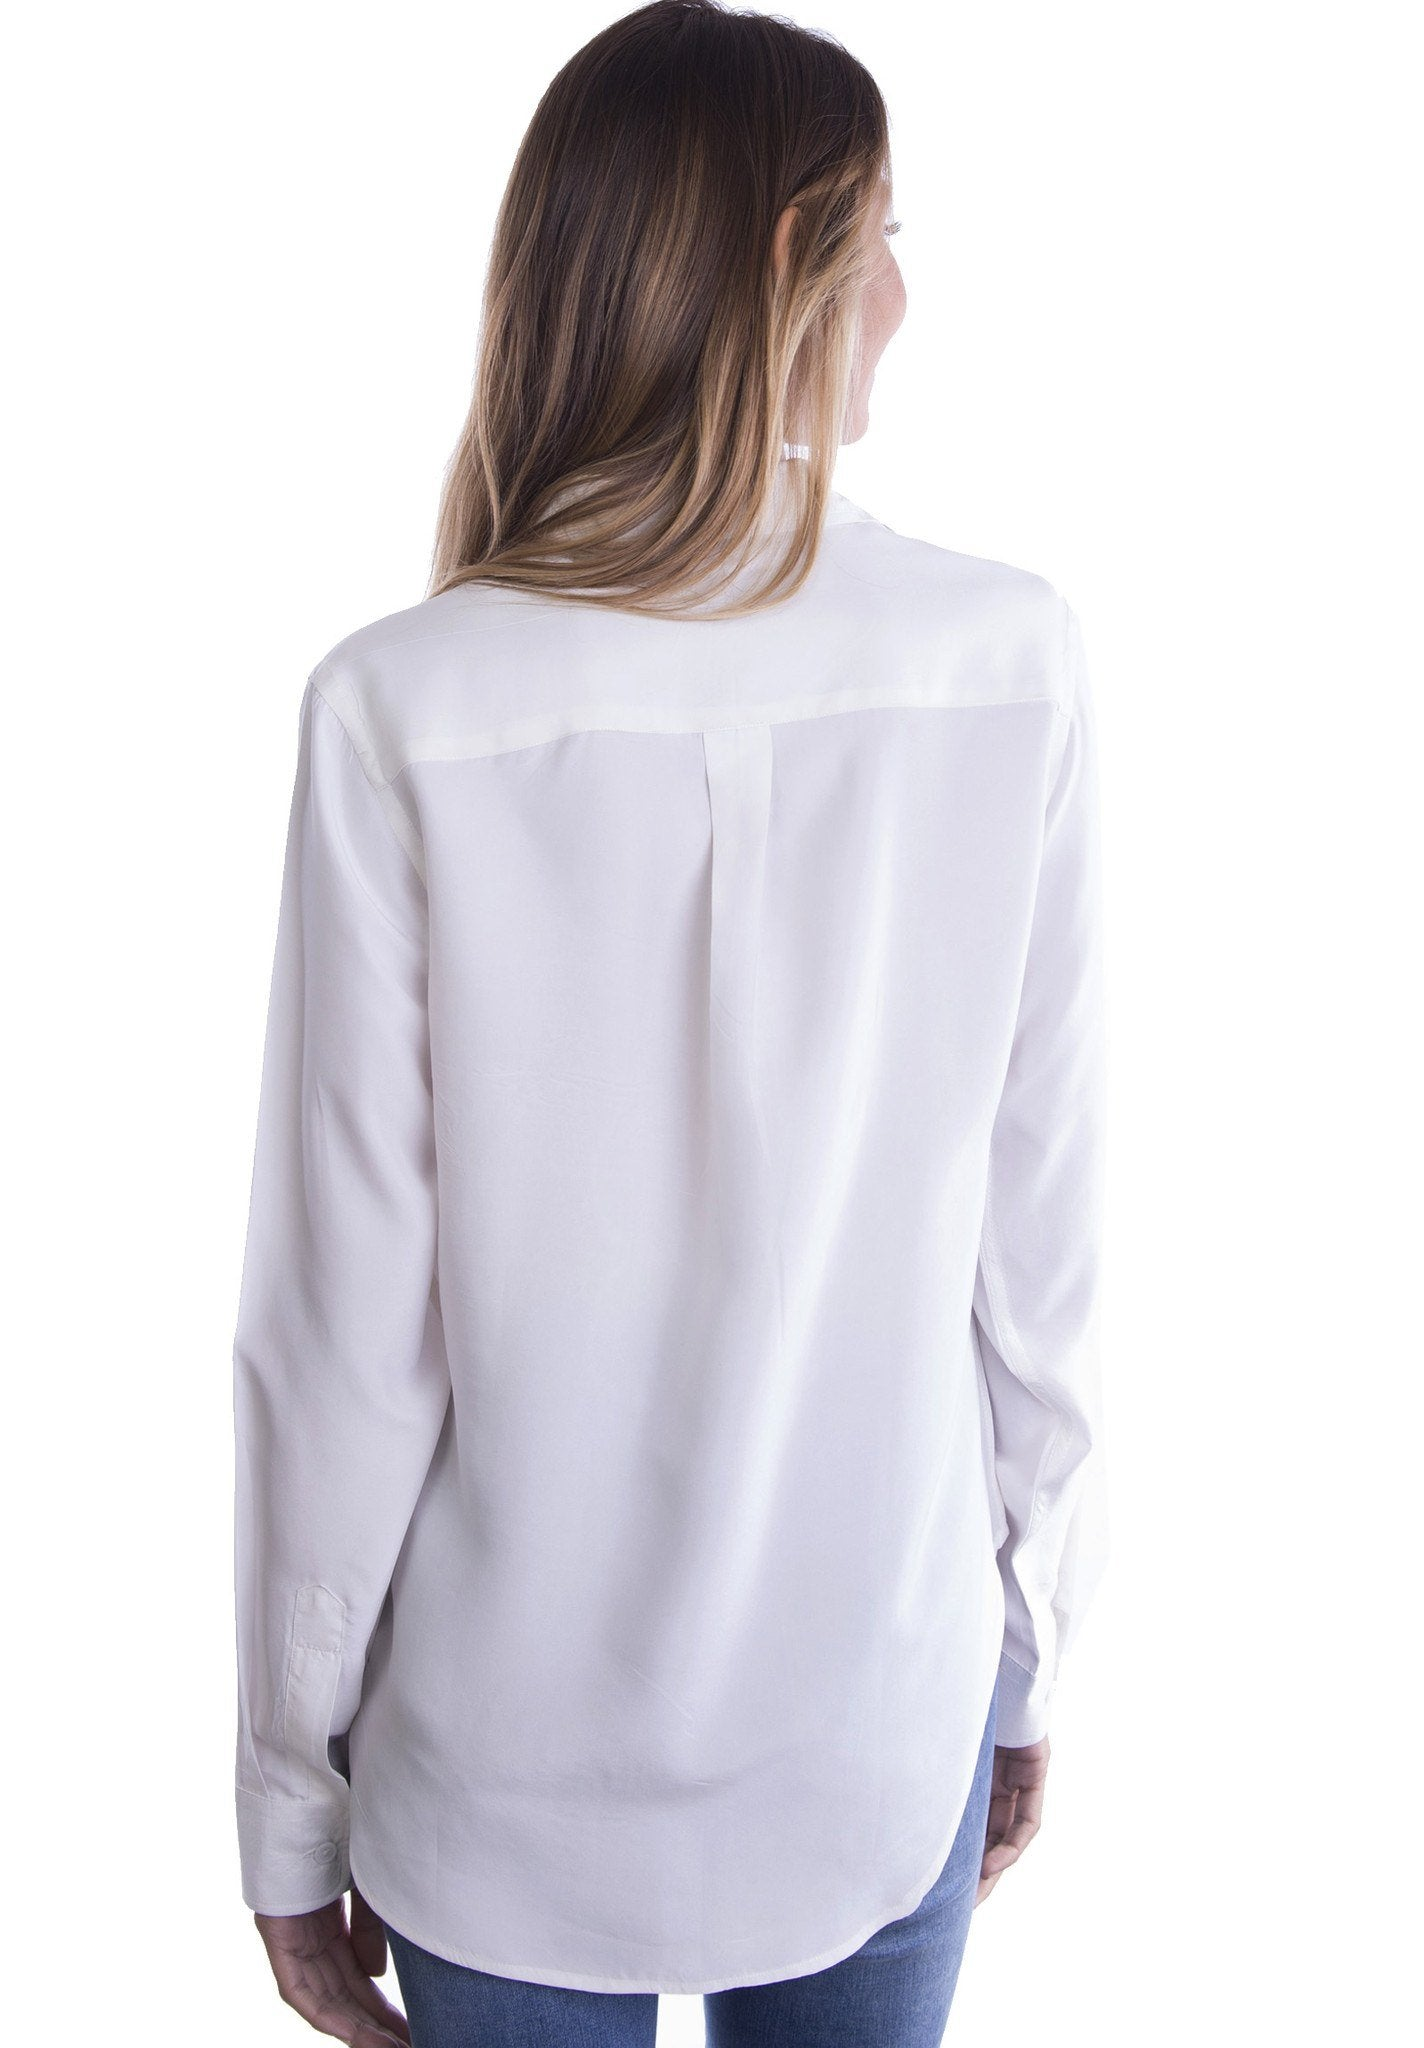 Lete Silk White, Sand Washed Shirt with pockets